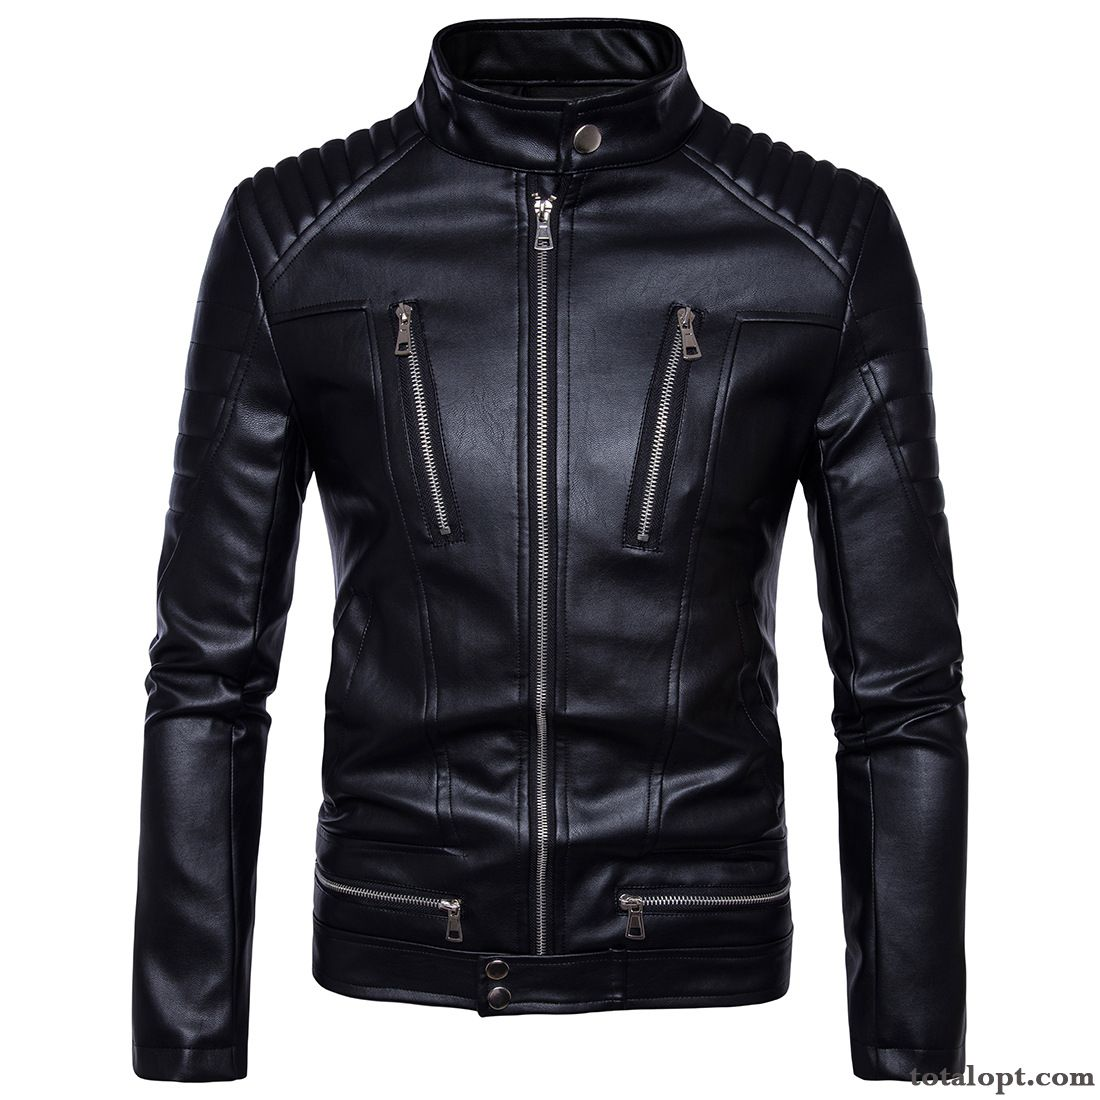 Jacket Coat Men's Leather New Products Spring Many Zipper Black Cherry Salmon Online